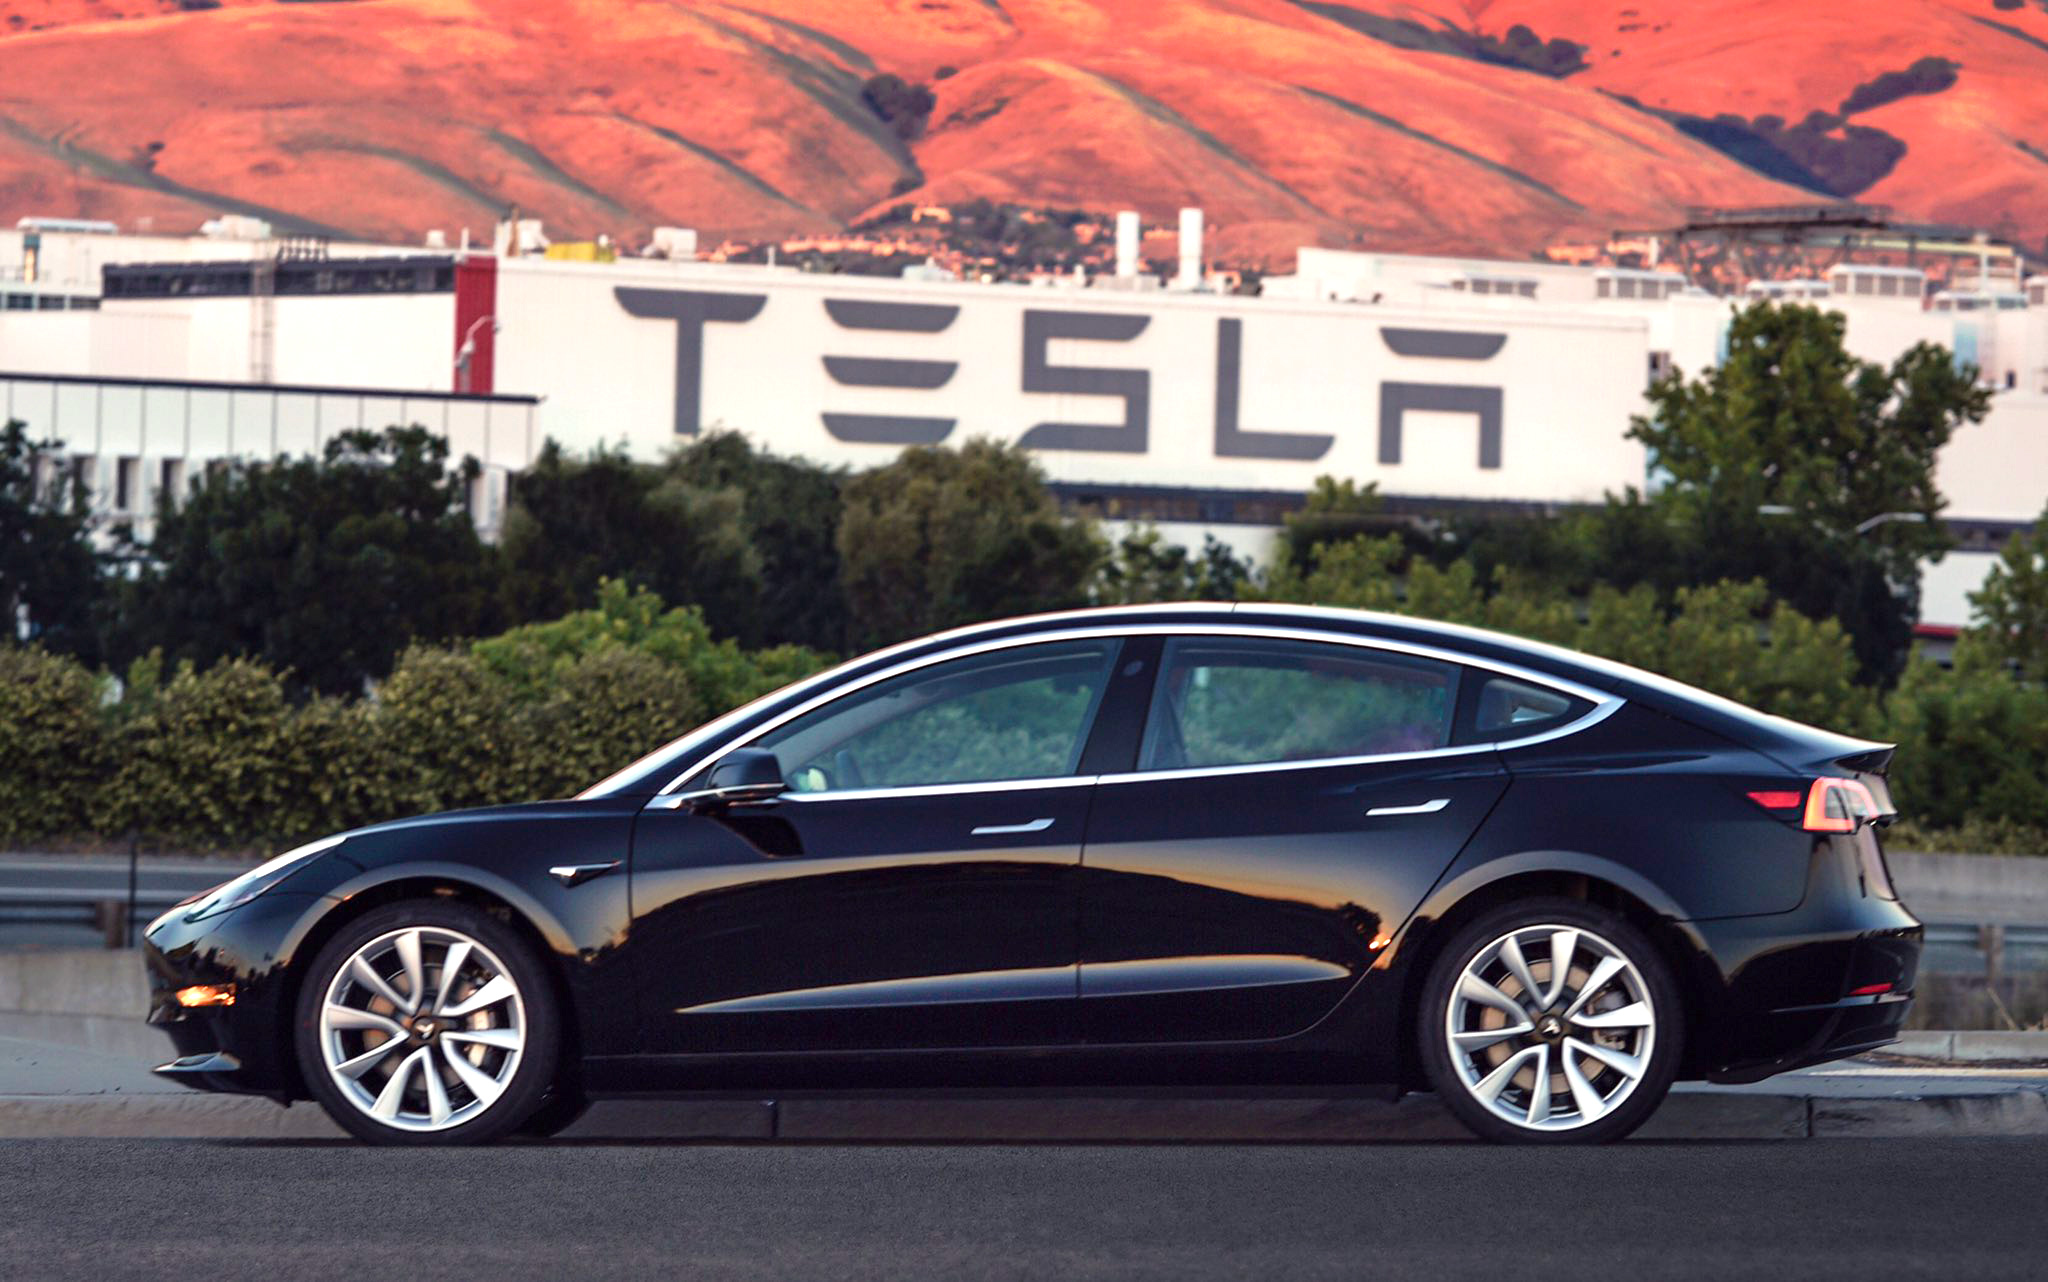 2nd photo of the first production Tesla Model 3